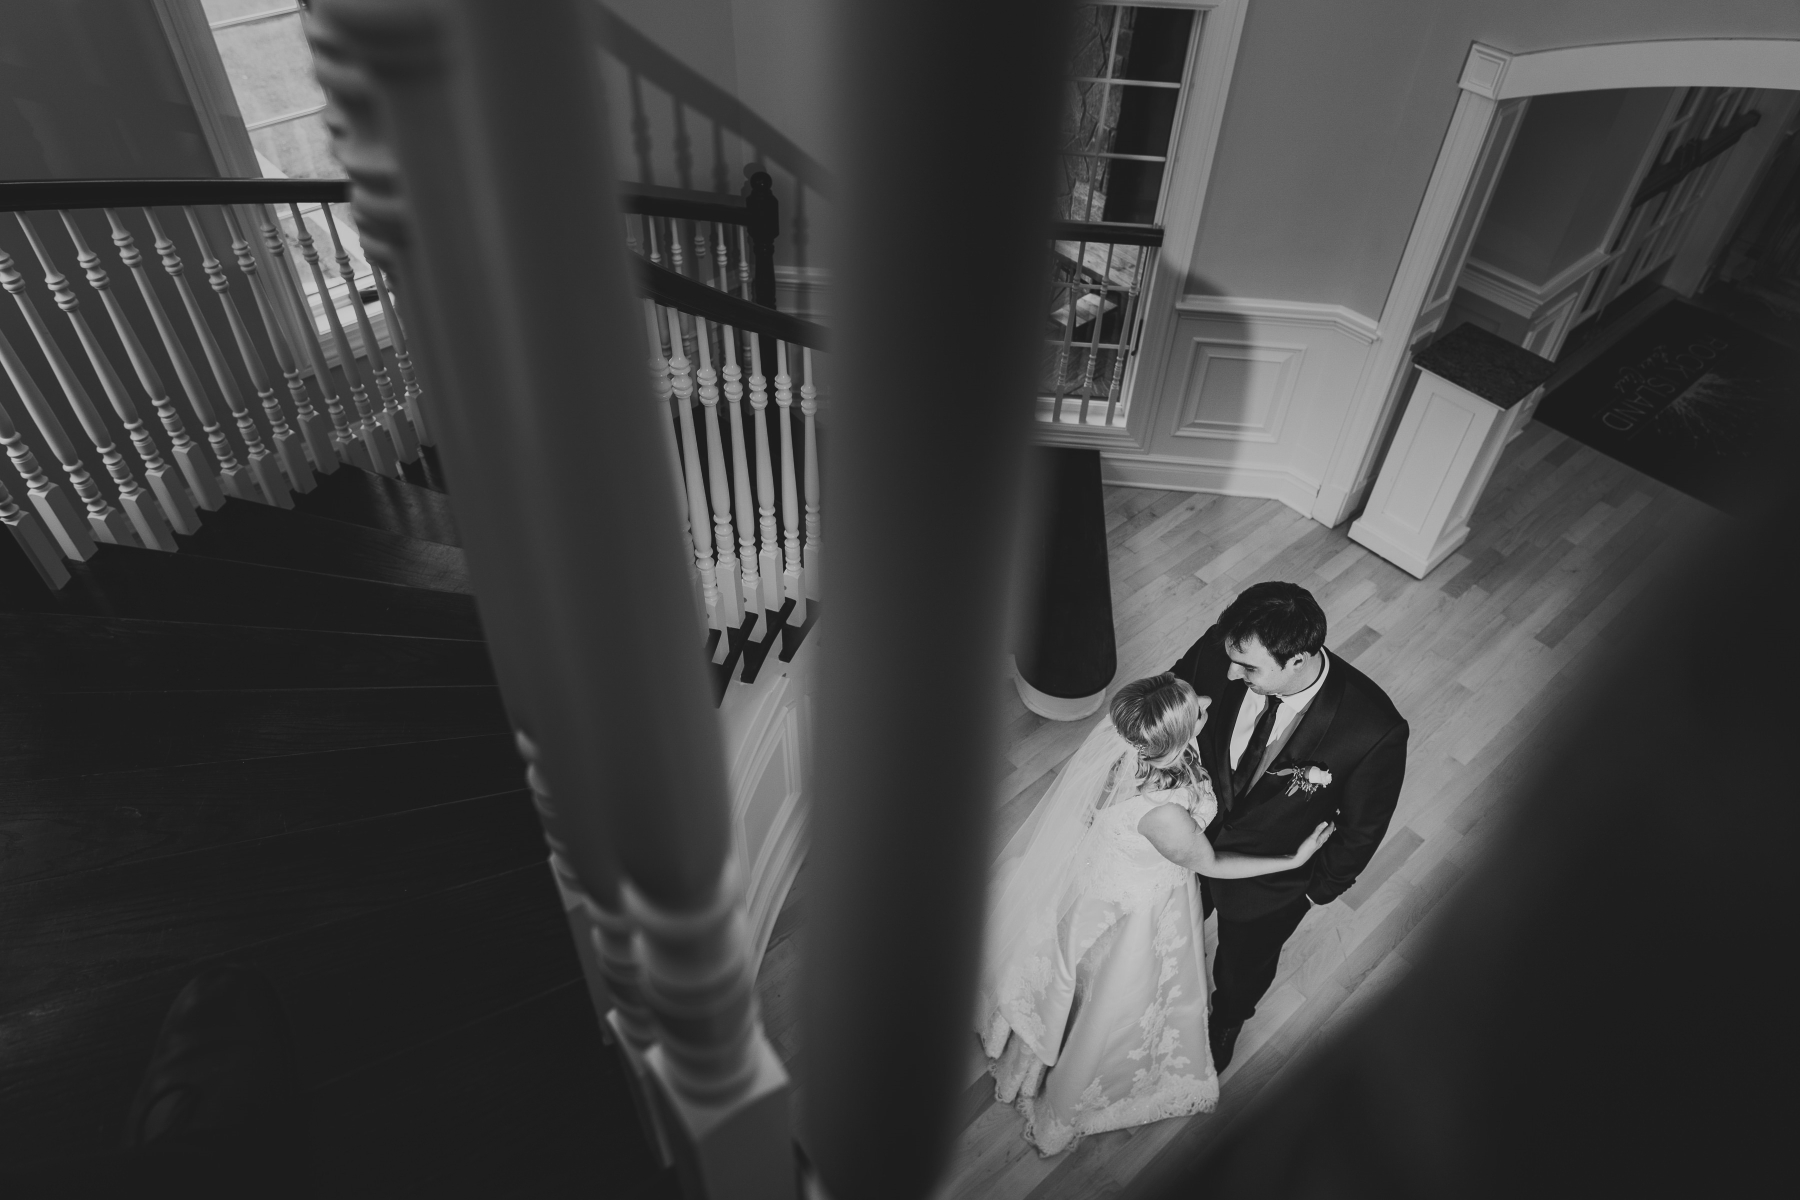 Incorporating compositional tools is another way I can help my images stand out from the crowd, rather than just a straight shot, I used the banister to help me frame Tara and Zach, to draw attention to them in the room.